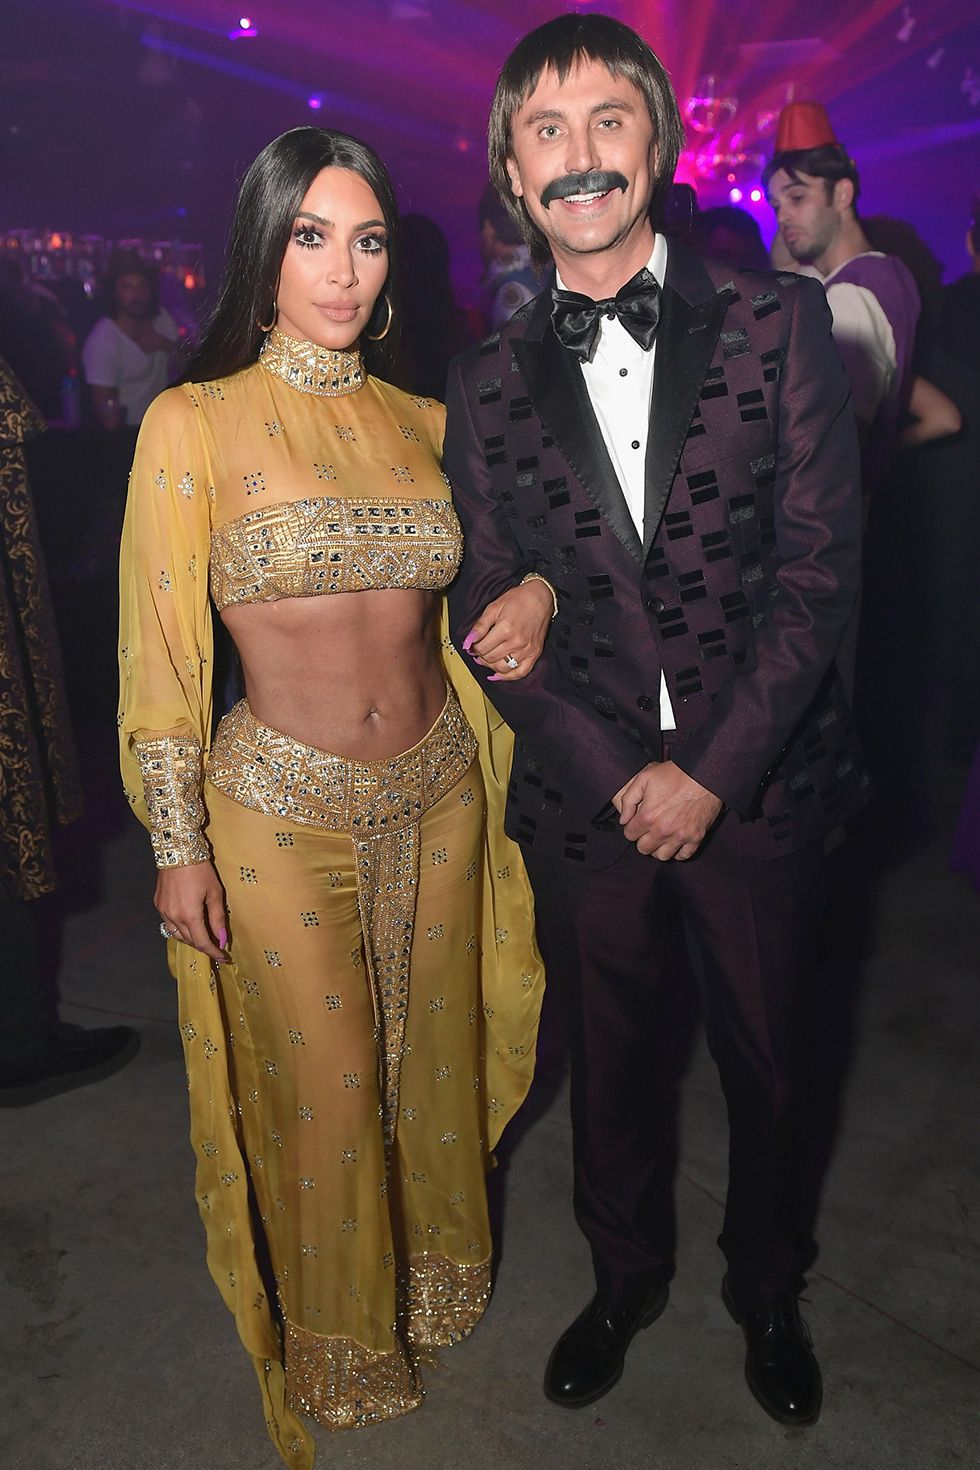 Kim Kardashian and Jonathan Cheban - Sunny and Cher Kim Kardashian and bestie Jonathan Cheban dressed up as Sunny and Cher in 2017 for the Casamigos Halloween party.